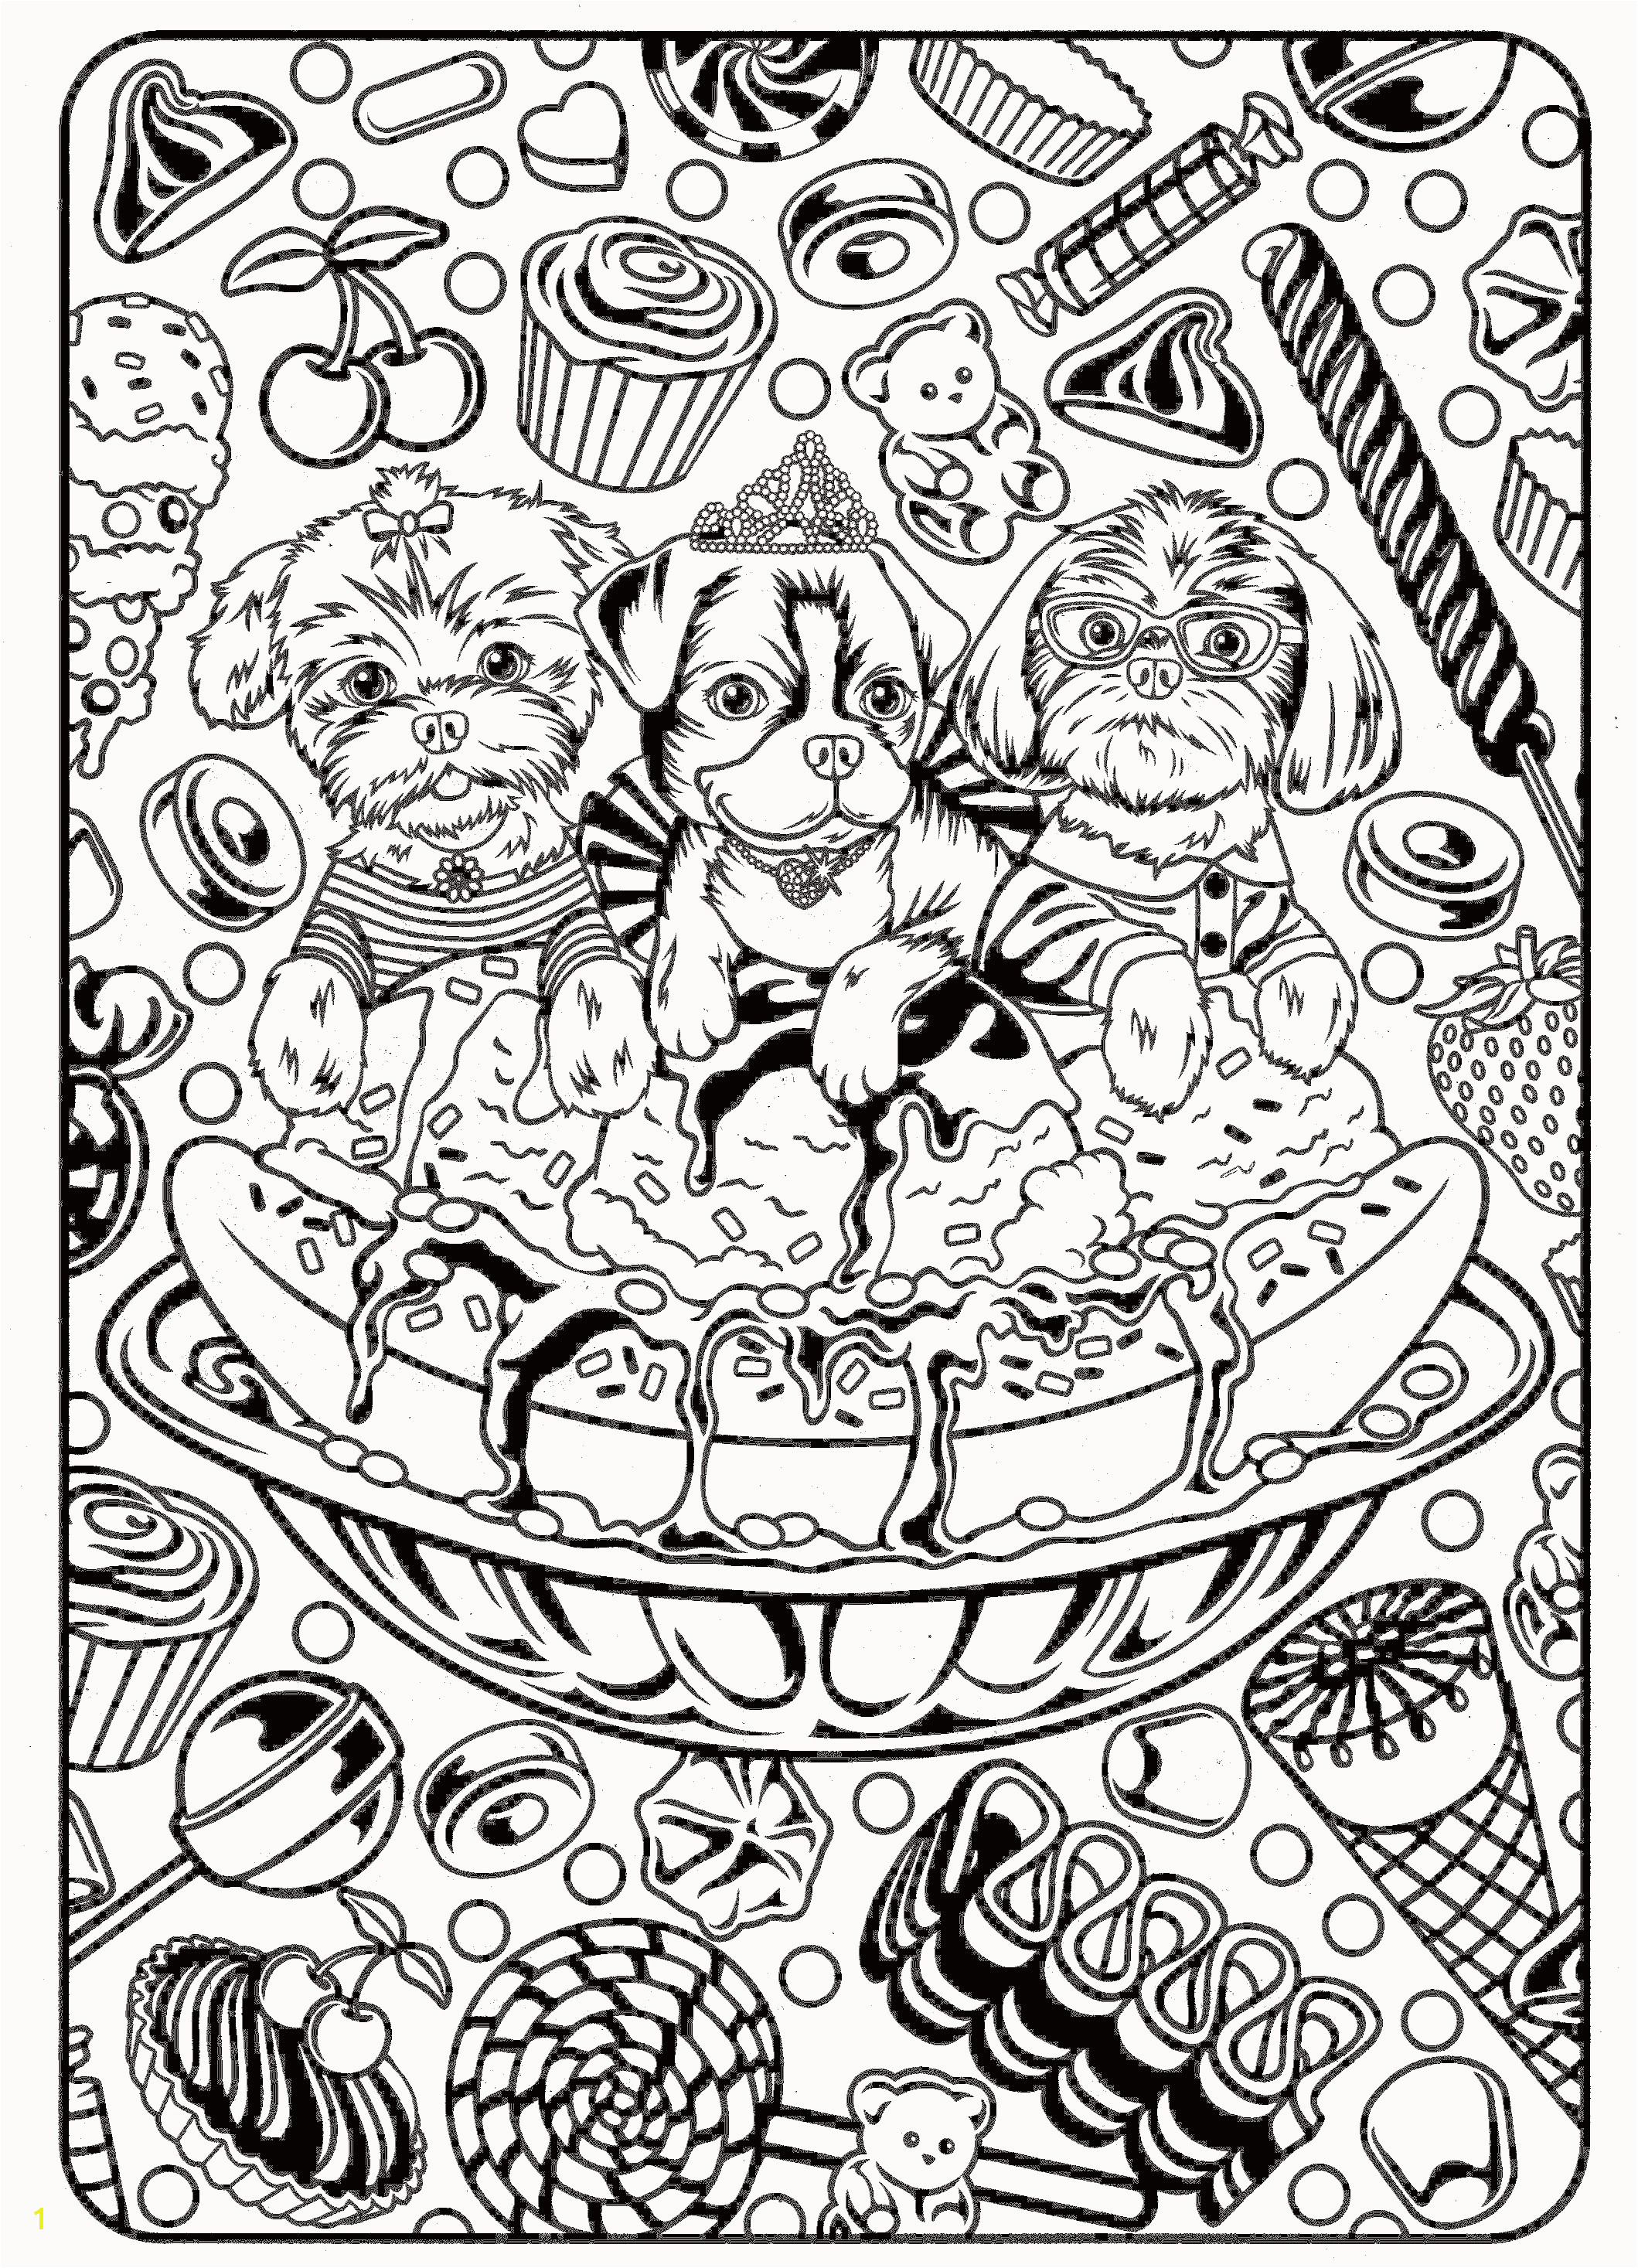 Iran Coloring Pages Awesome 25 Unique Coloring Pages Babies 16 Elegant Iran Coloring Pages